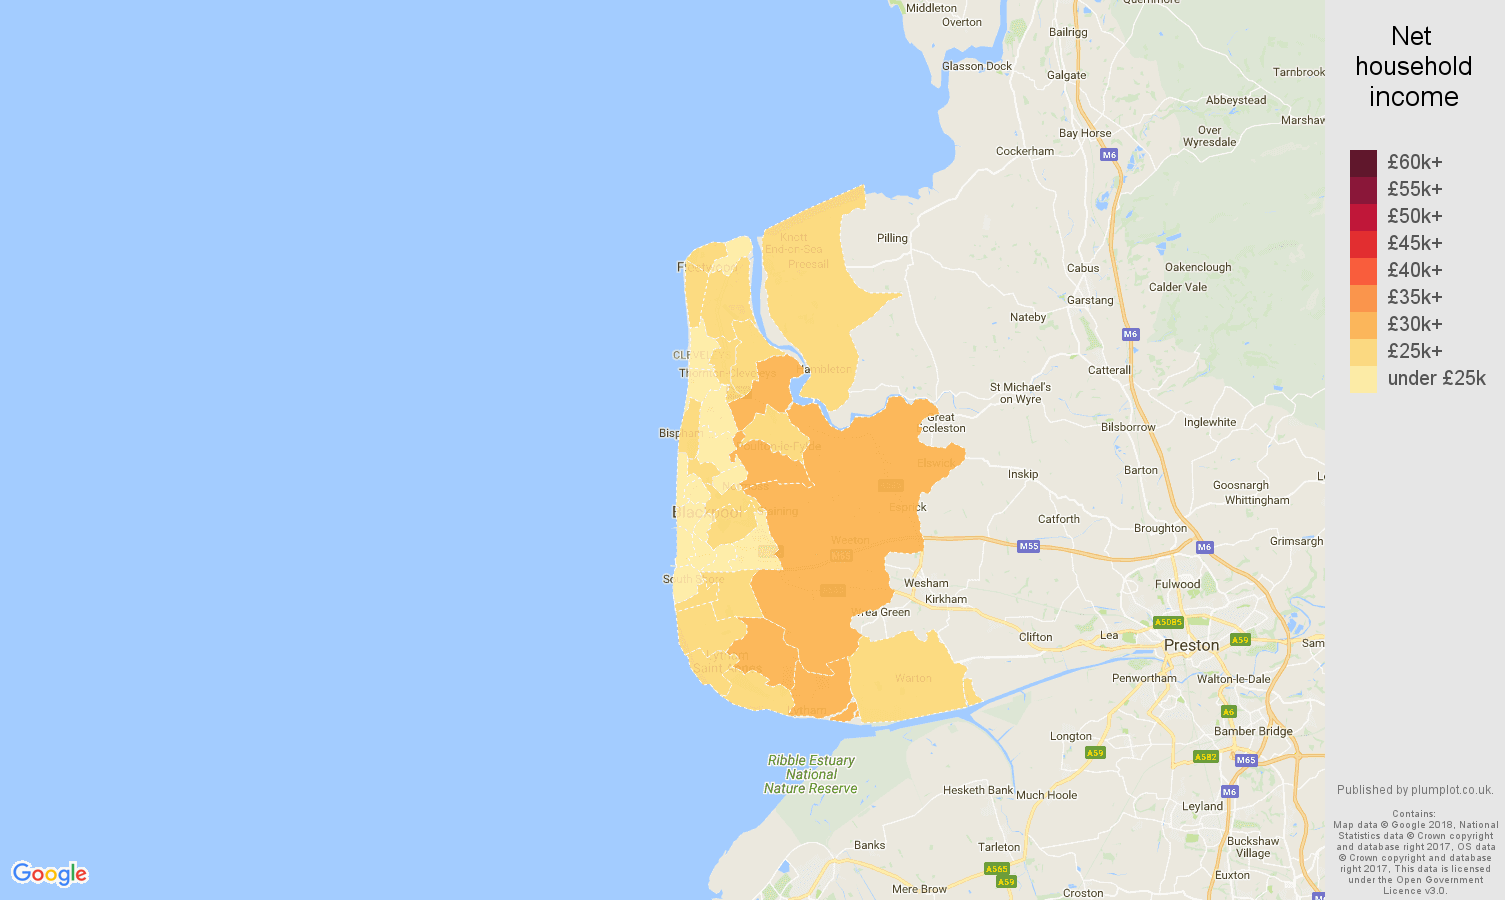 Blackpool net household income map